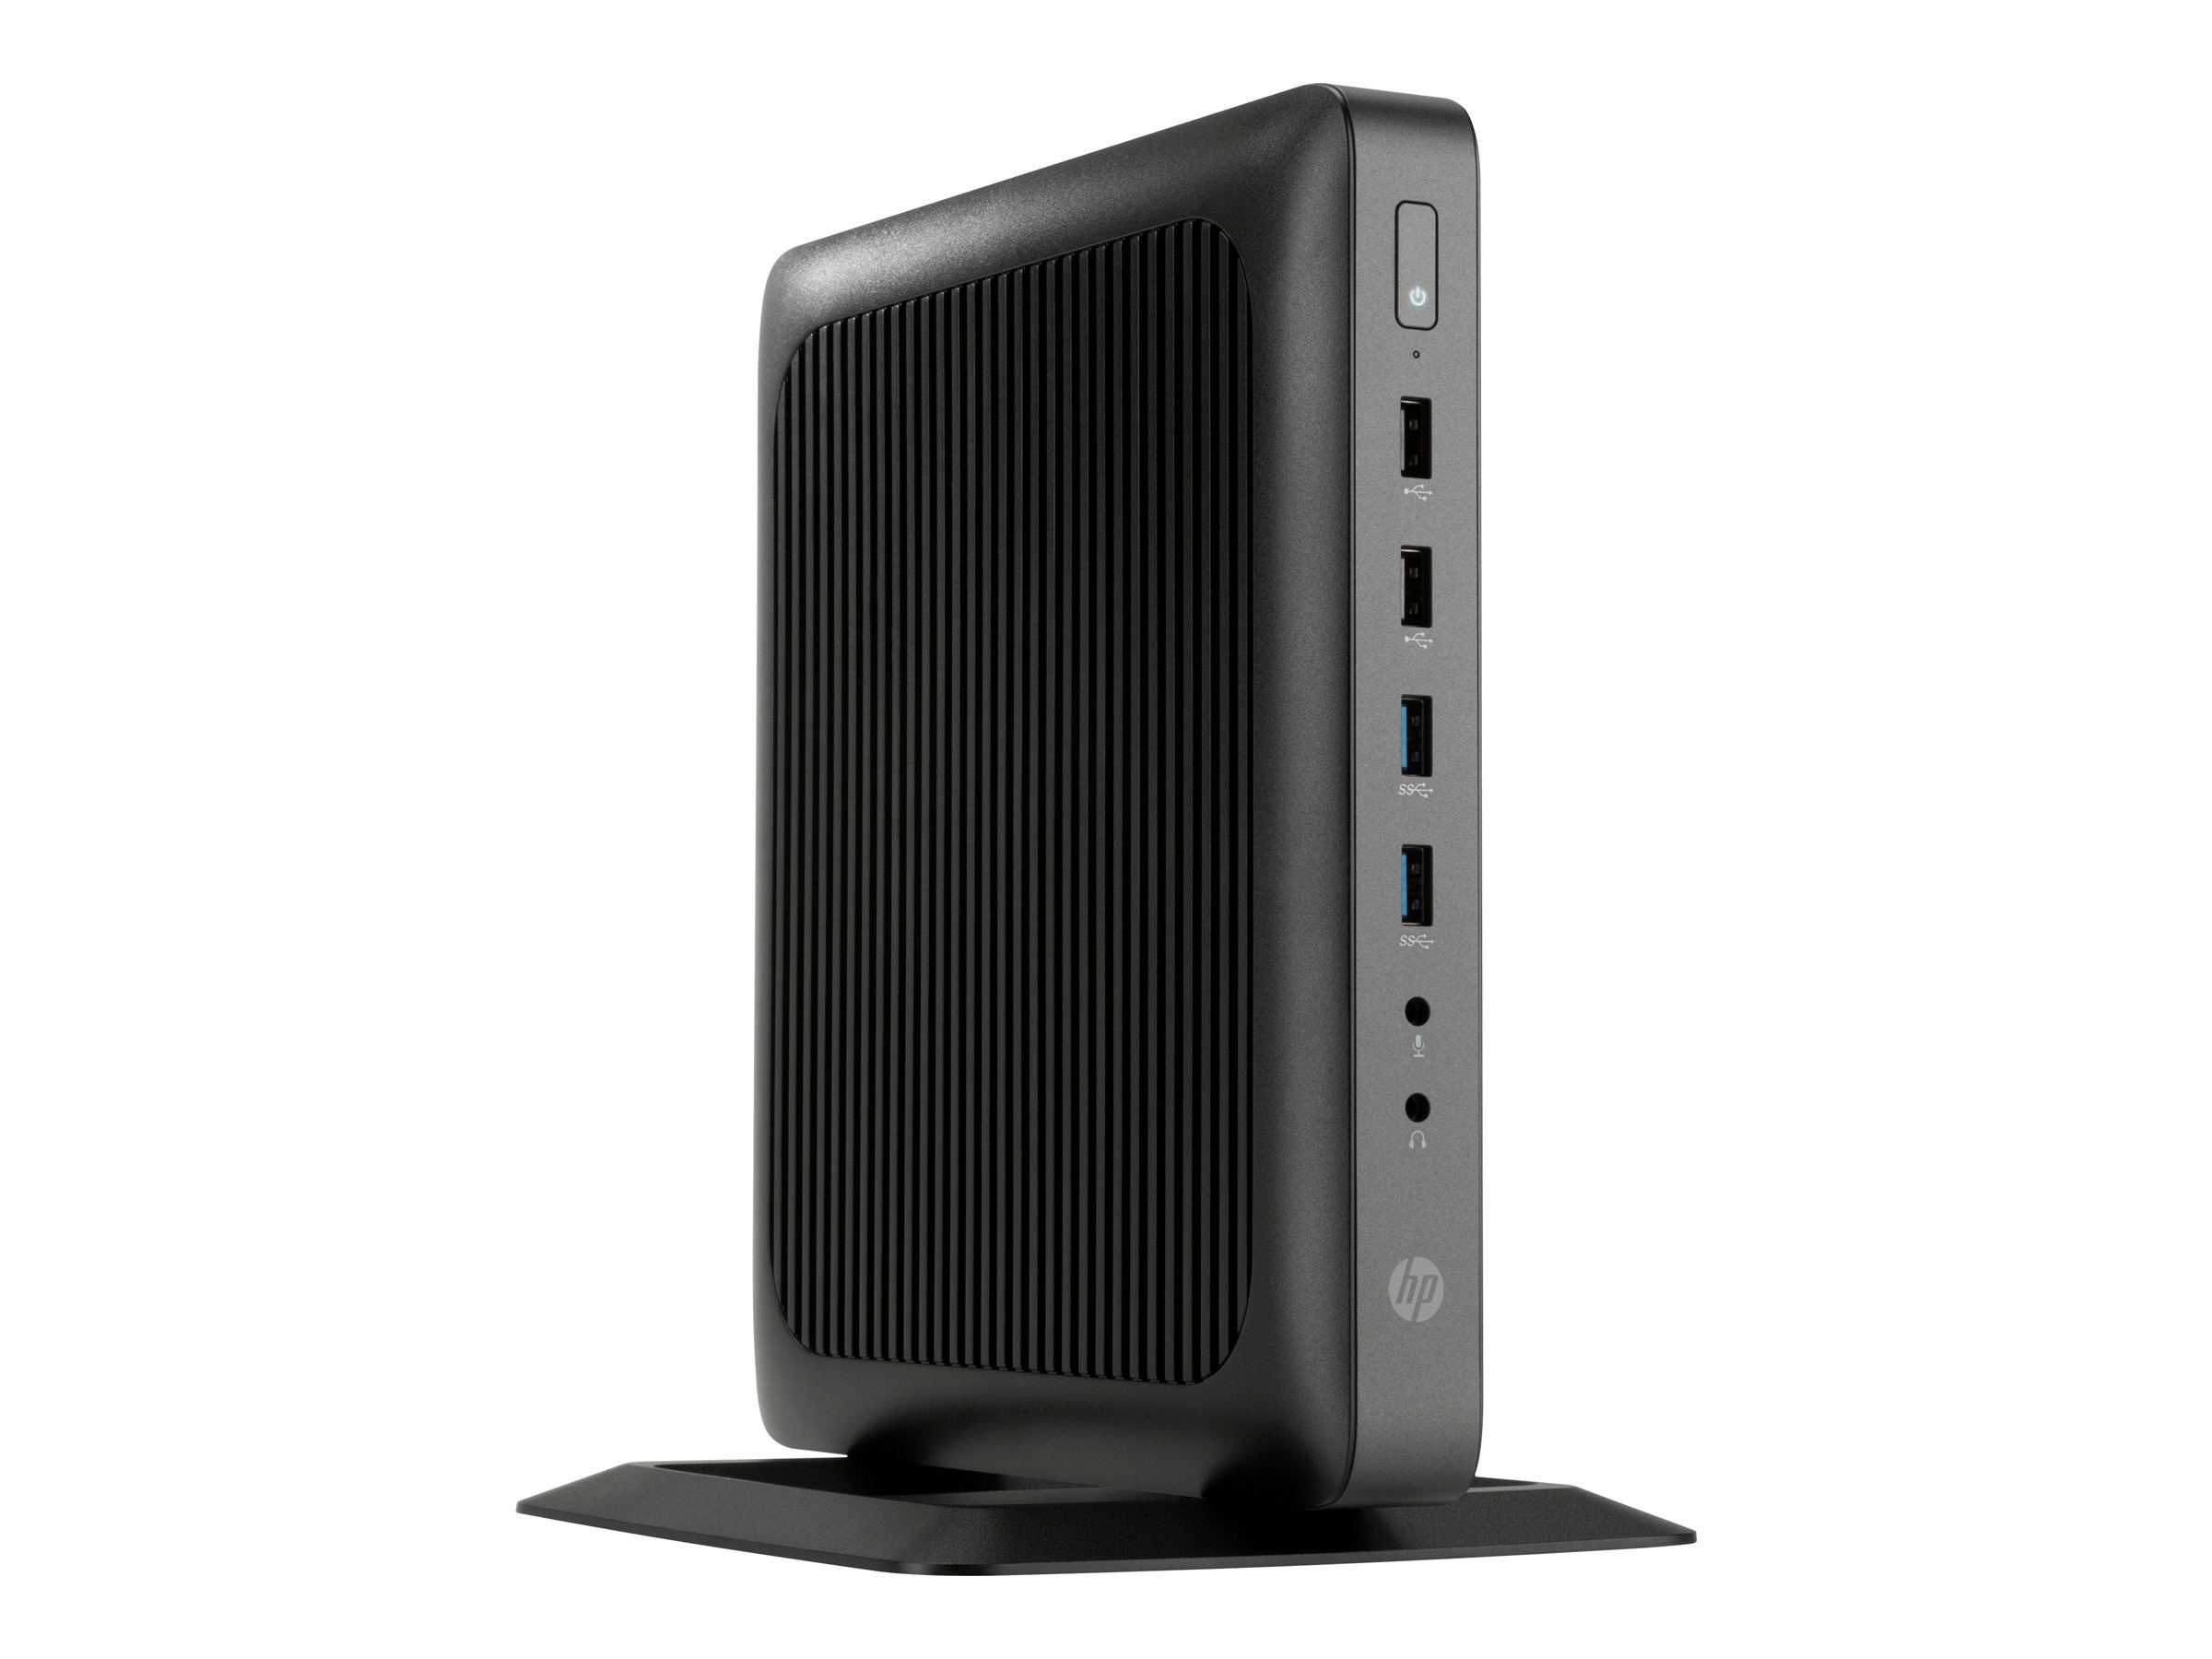 HP t620 Flexible Thin Client AMD QC GX-415GA 1.5GHz 4GB RAM 16GB Flash HD8330E GbE agn BT WES8, G6F30AA#ABA